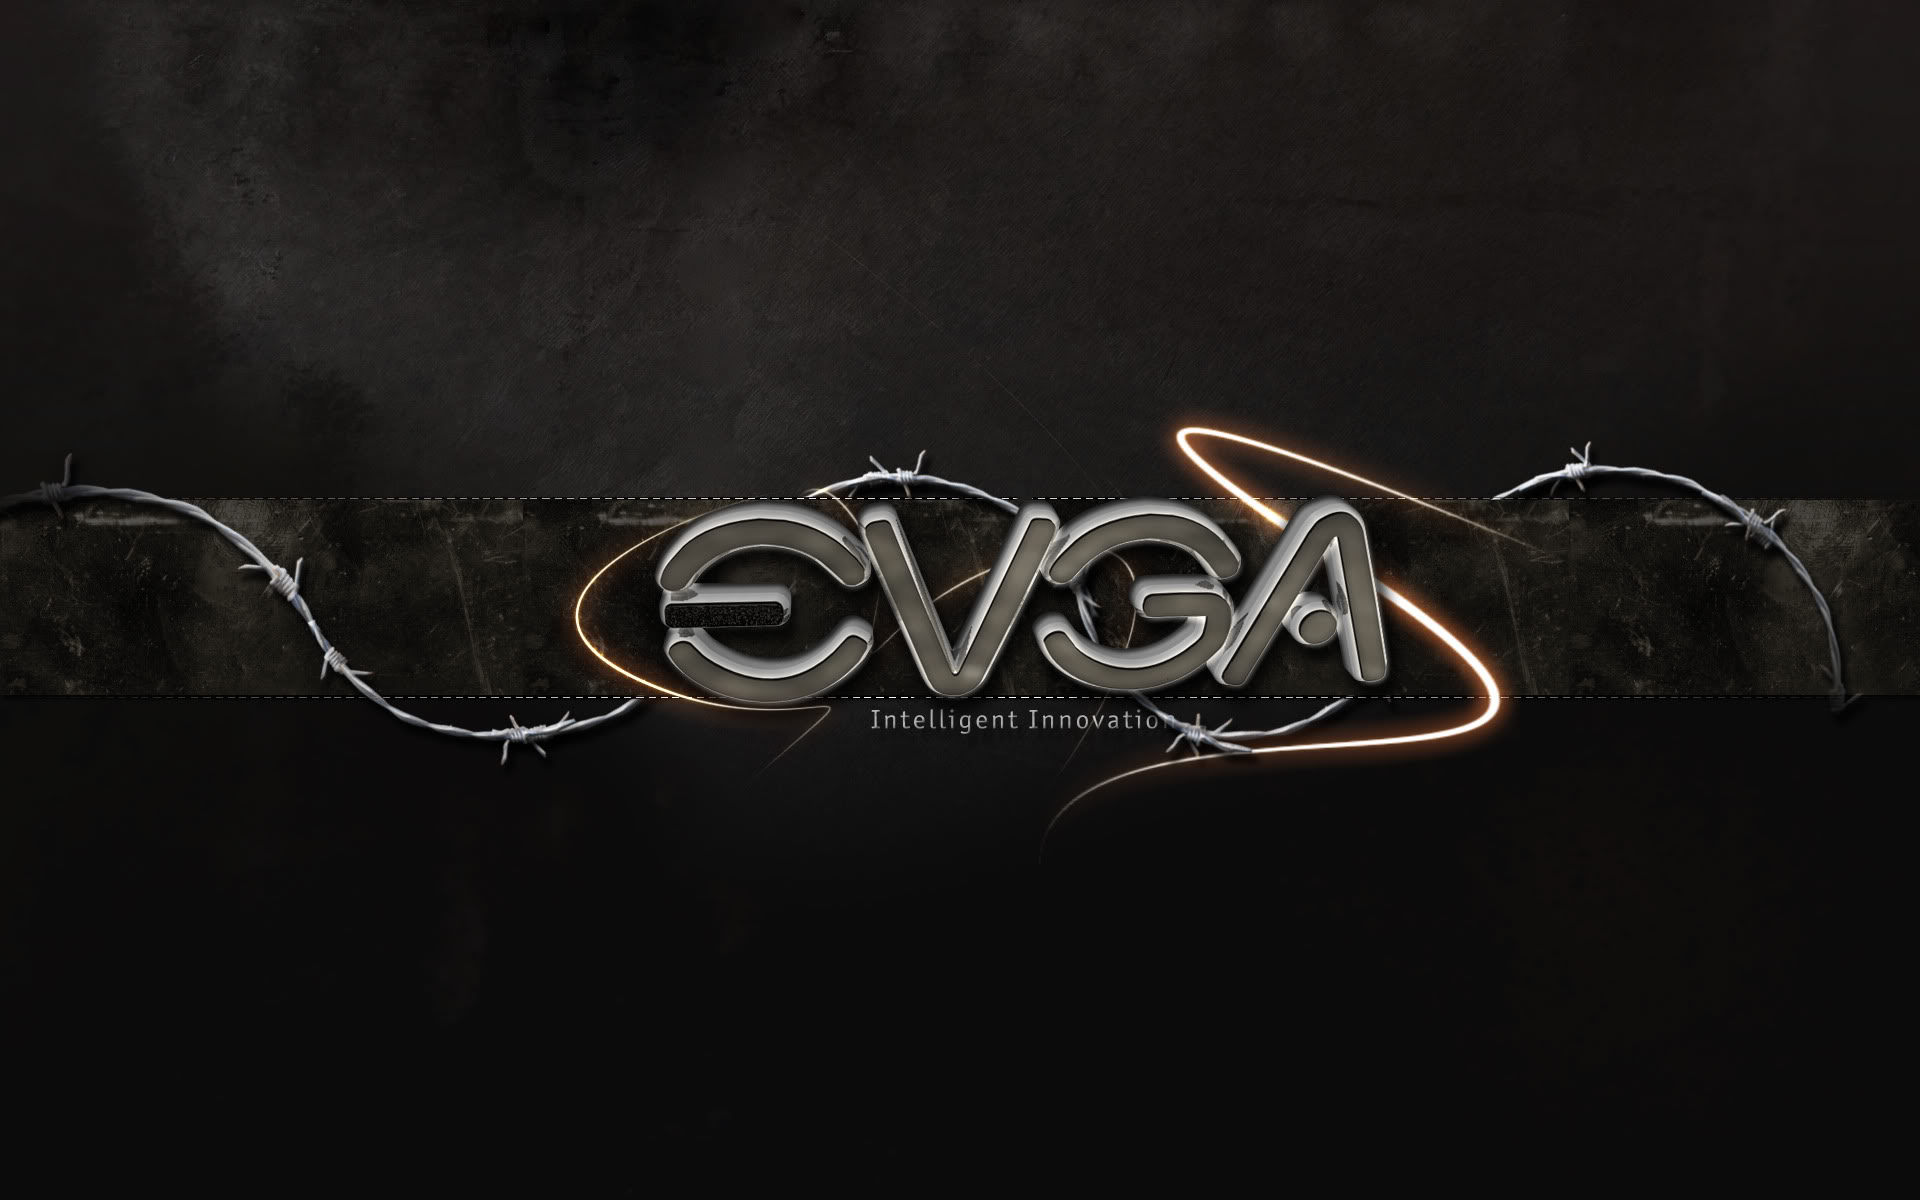 NewEVGA-Wallpaper.jpg